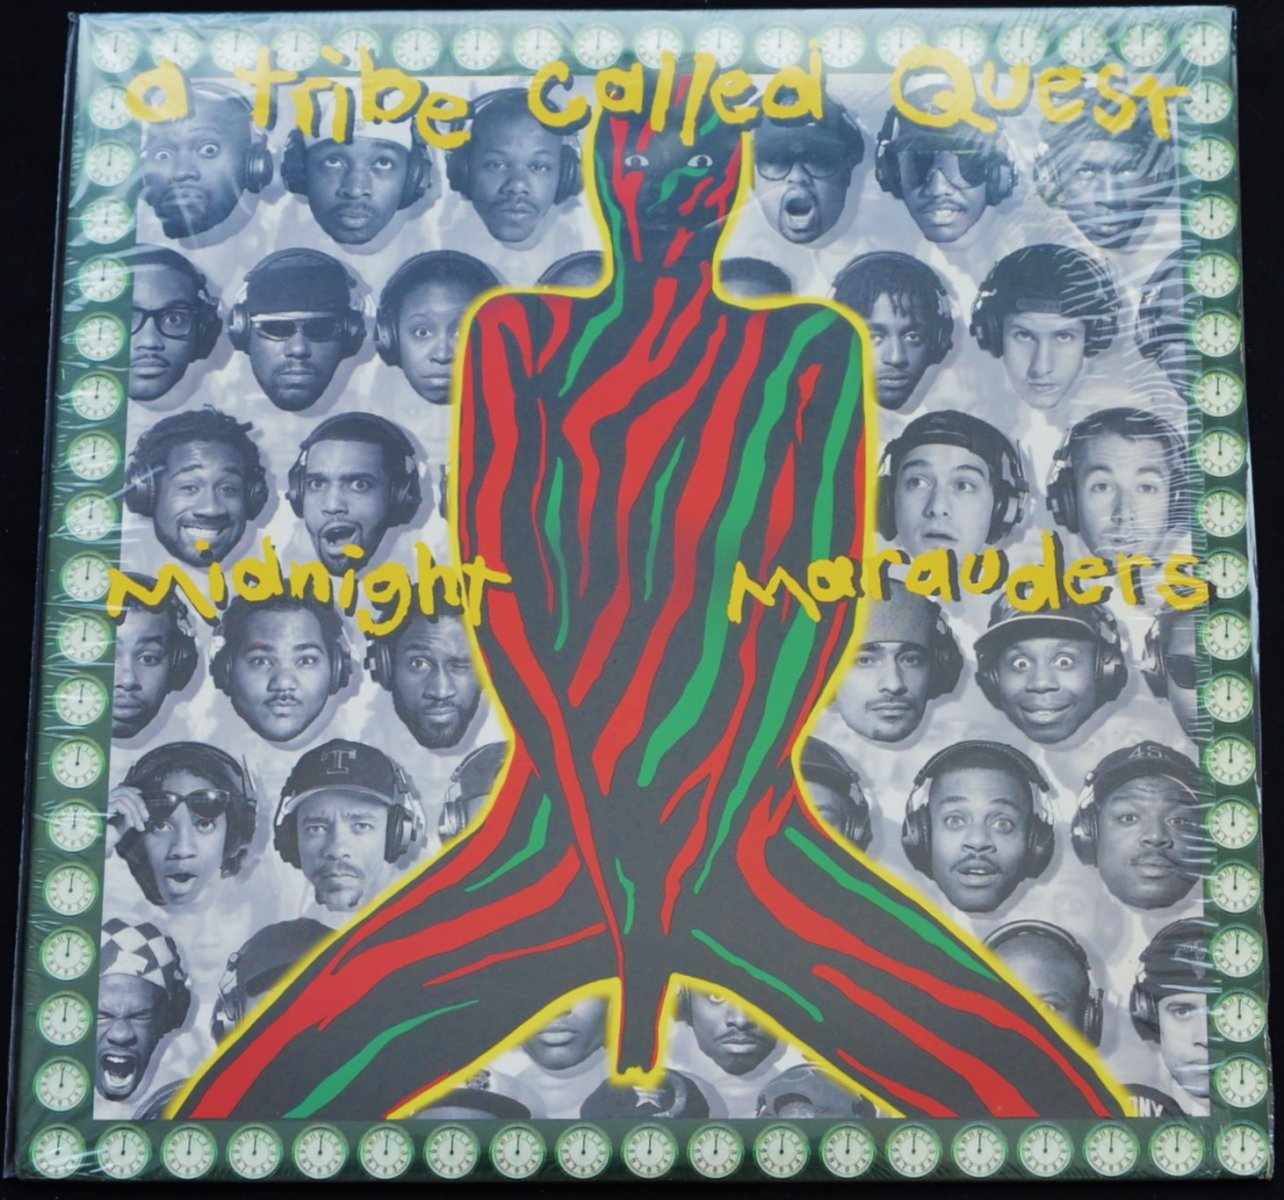 A TRIBE CALLED QUEST ‎/ MIDNIGHT MARAUDERS (1LP)